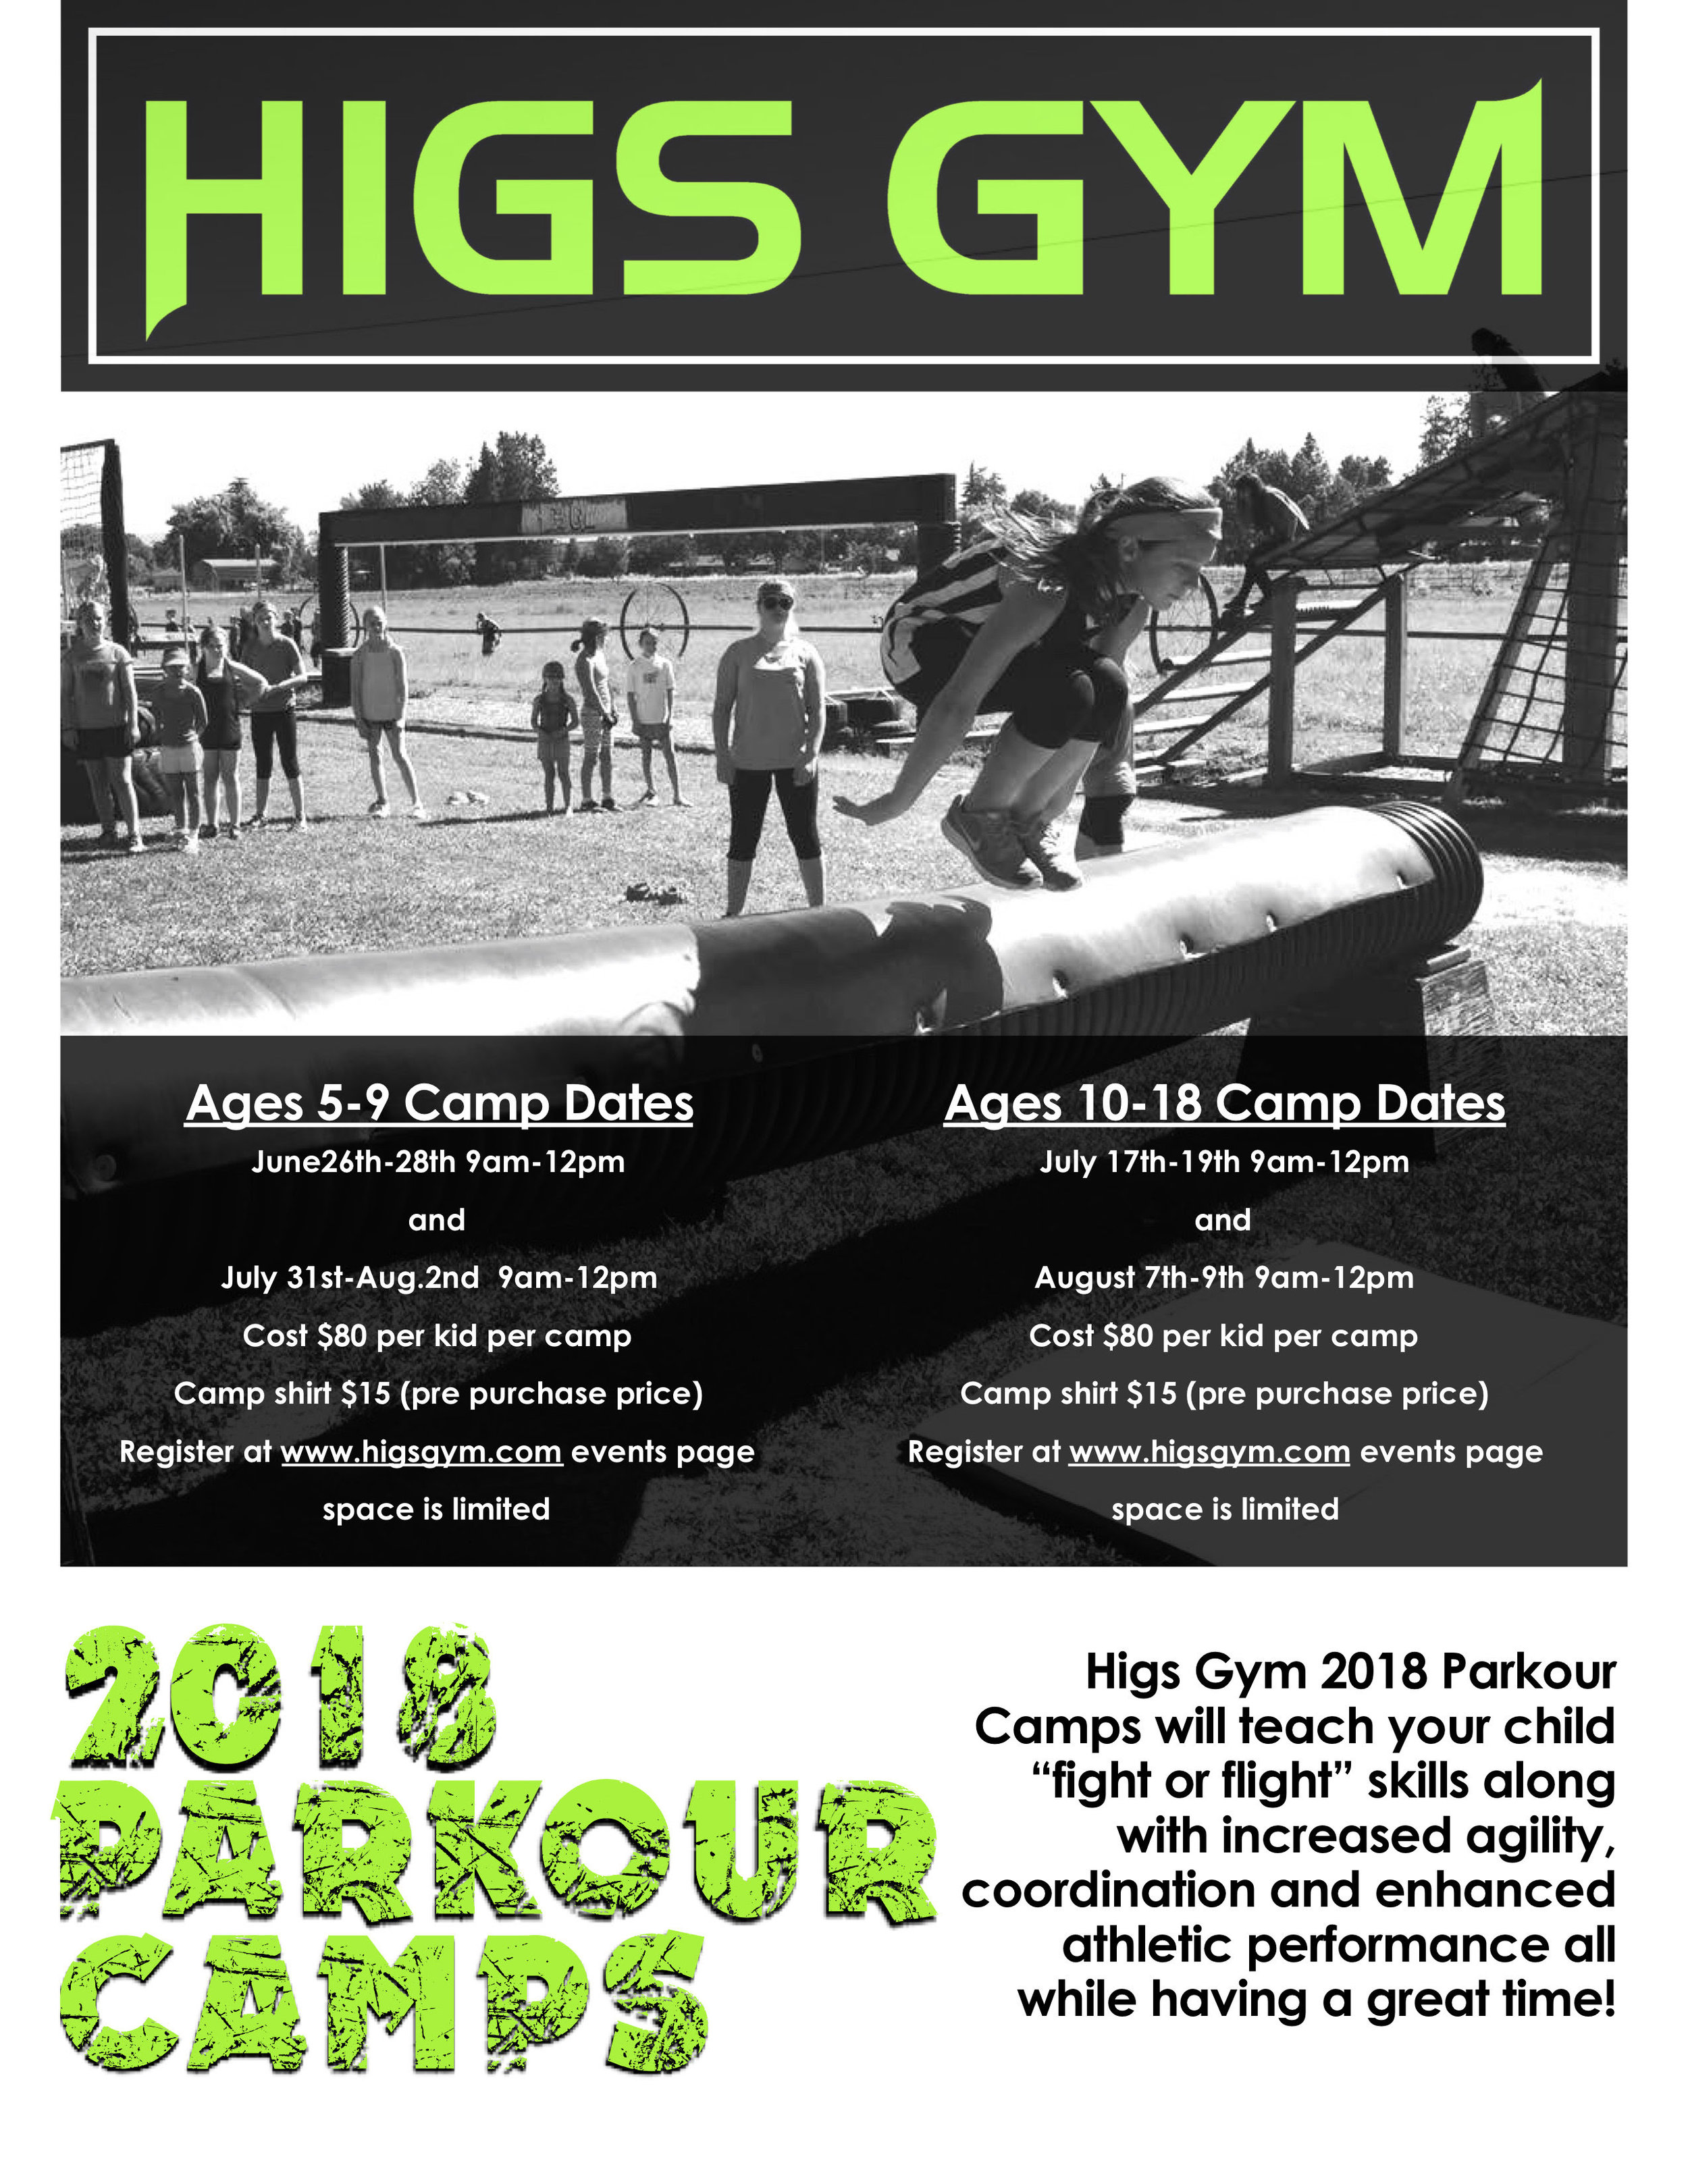 HIGS GYM - Summer Camps - What to do in Southern Oregon